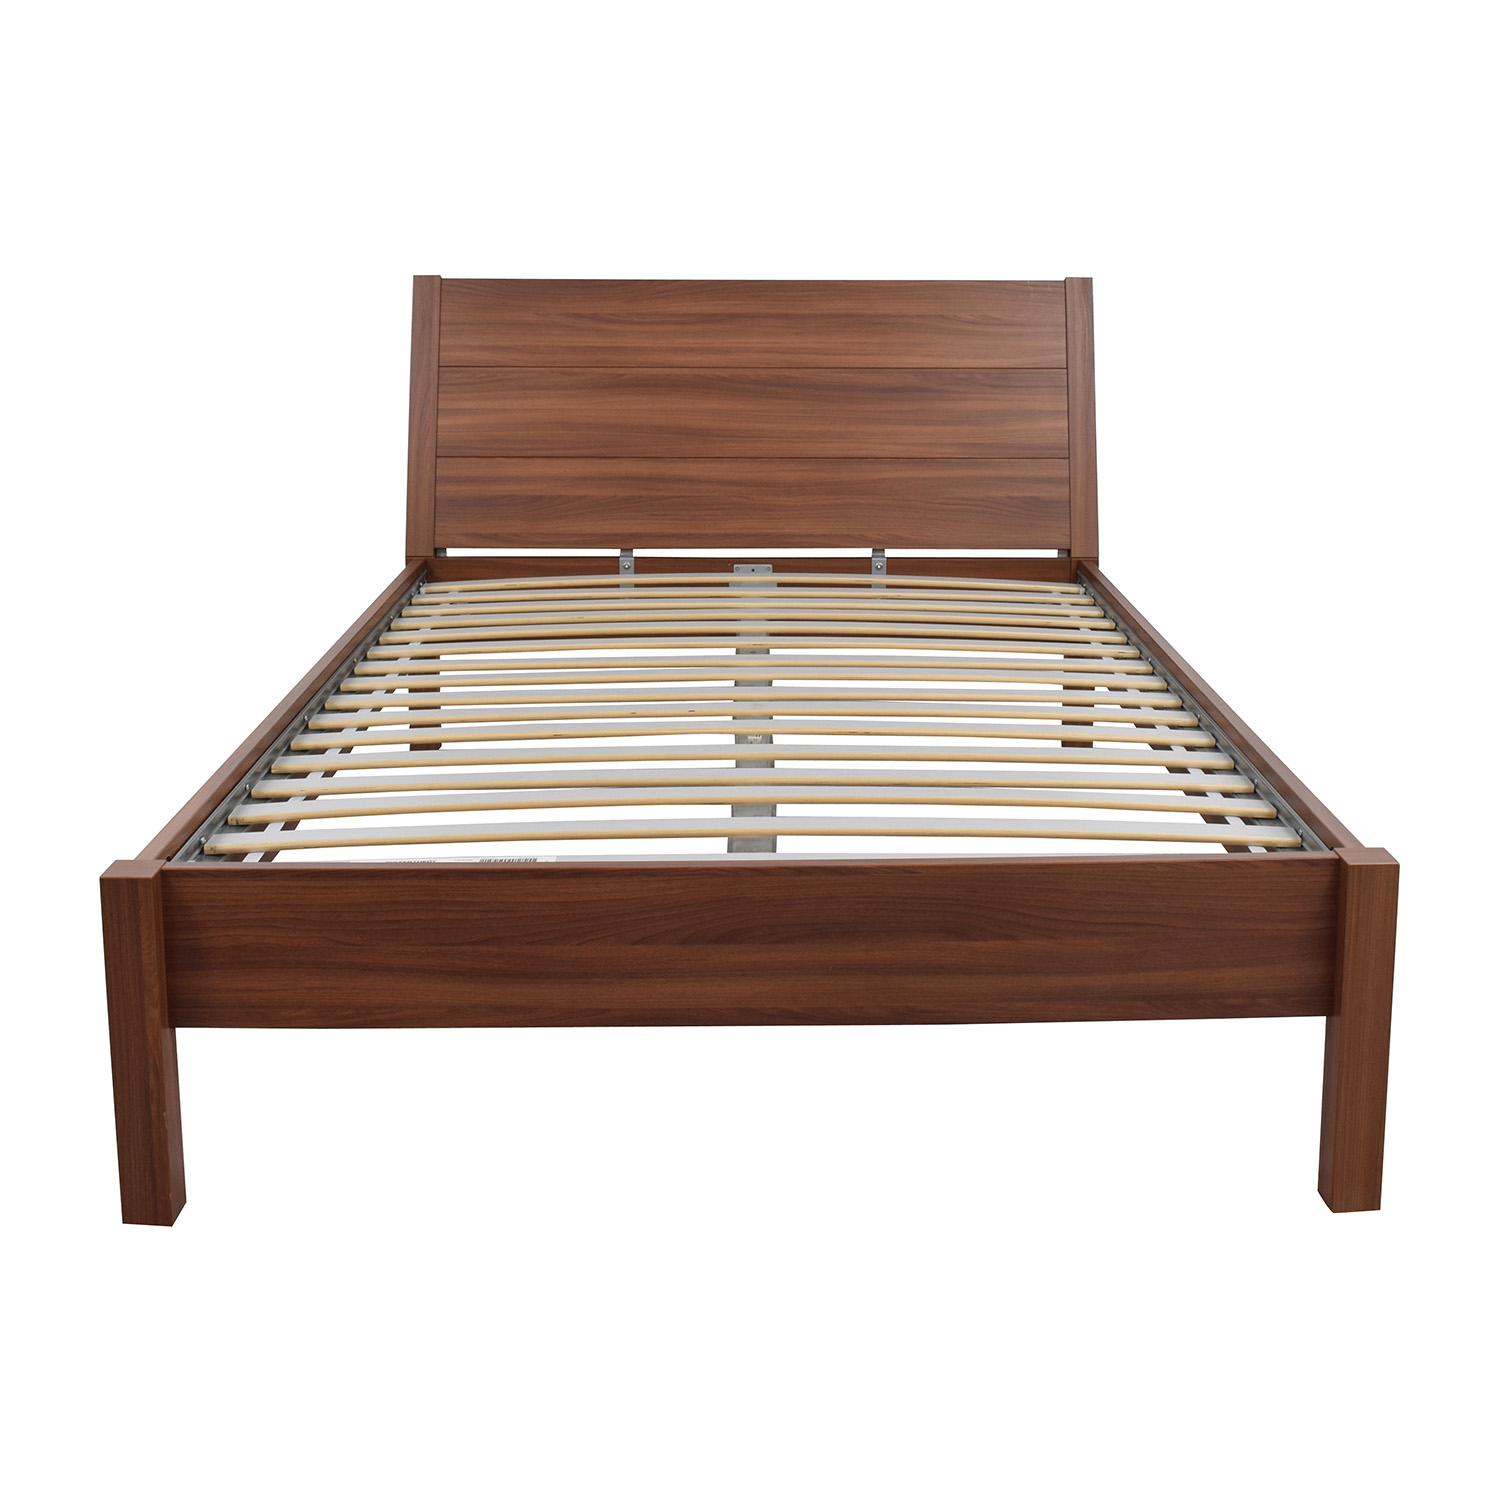 Ikea Queen Wooden Platform Bed Frame Online